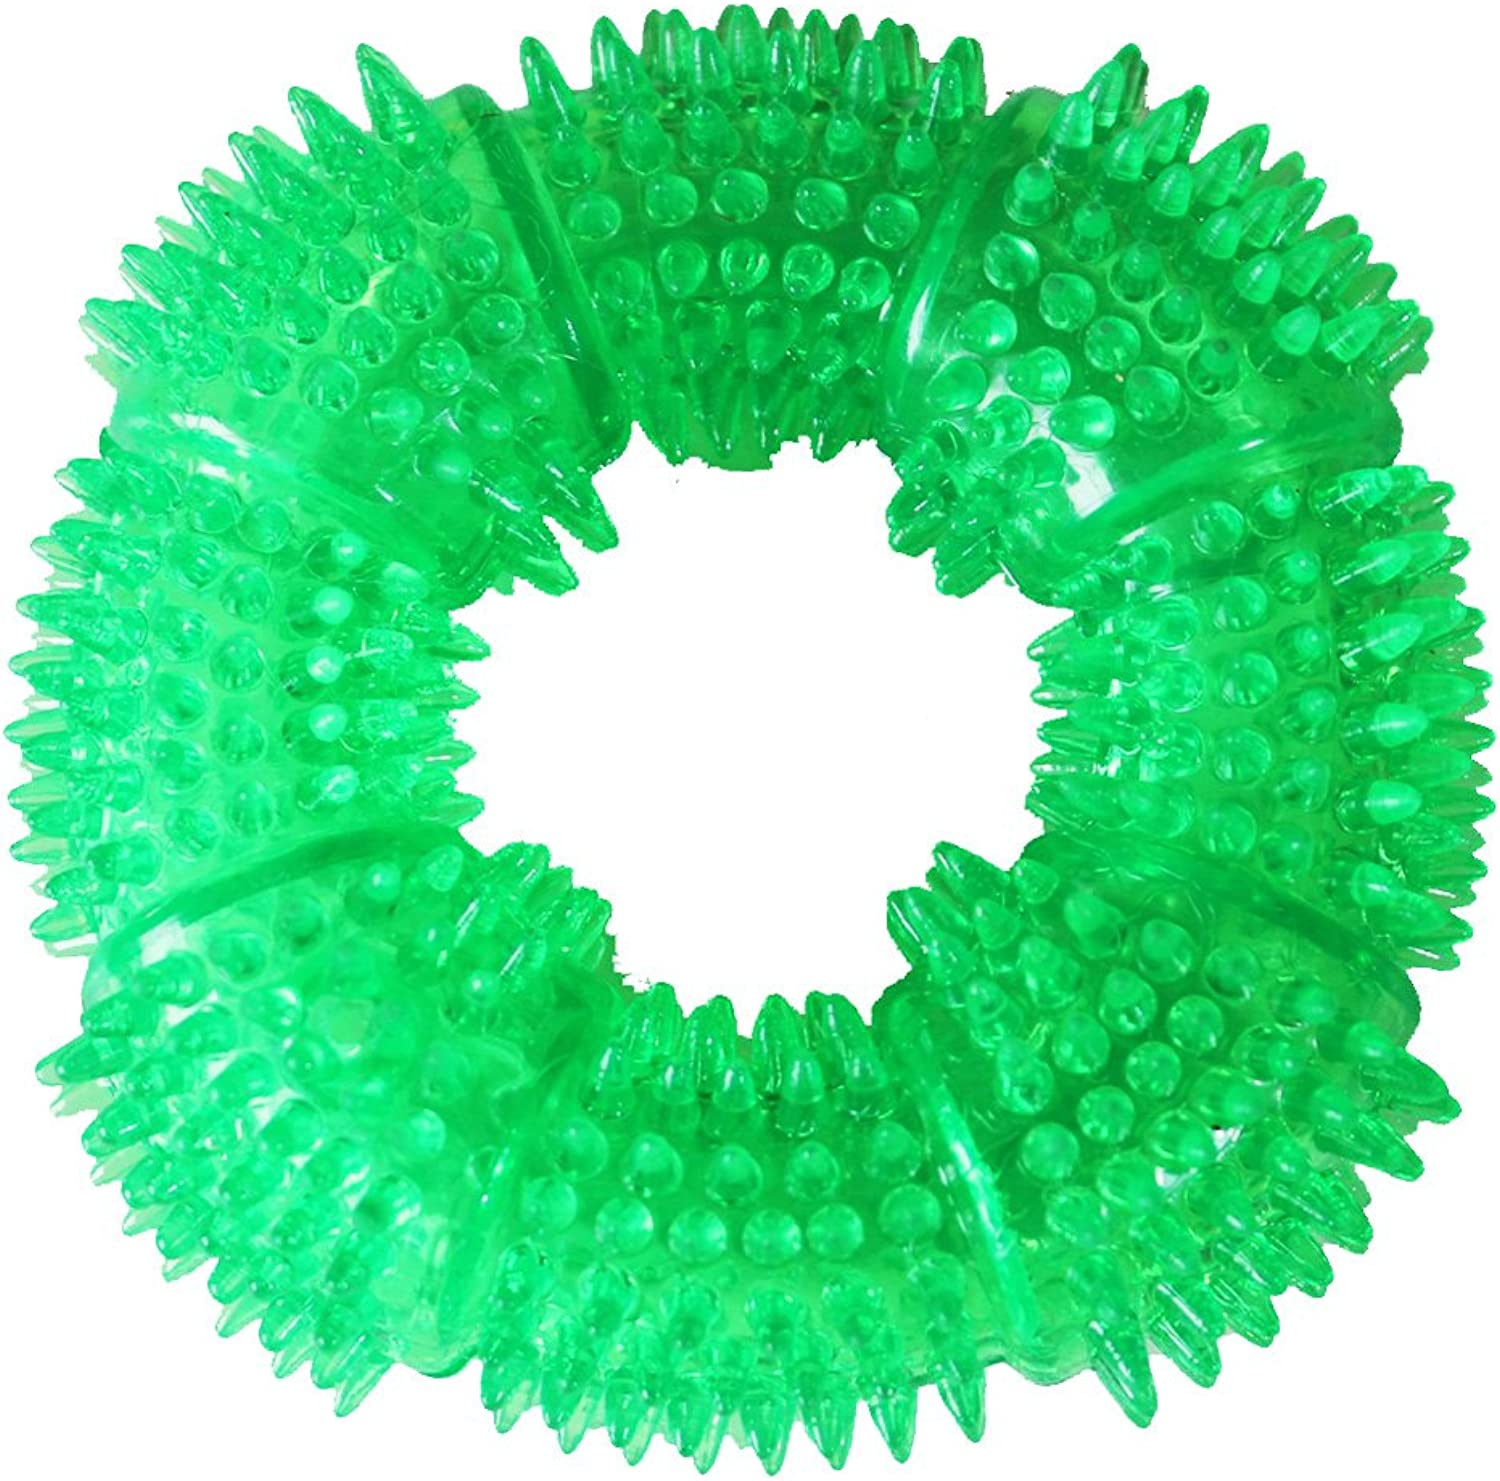 Aduck Durable Dog Squeaky Chew Toys for Aggressive Chewers Dental Teeth Mouth Cleaning Training and Playing [NonToxic Soft Rubber], Cute Crystal TPR Ring Design 5.12 inches (Crystal Green)